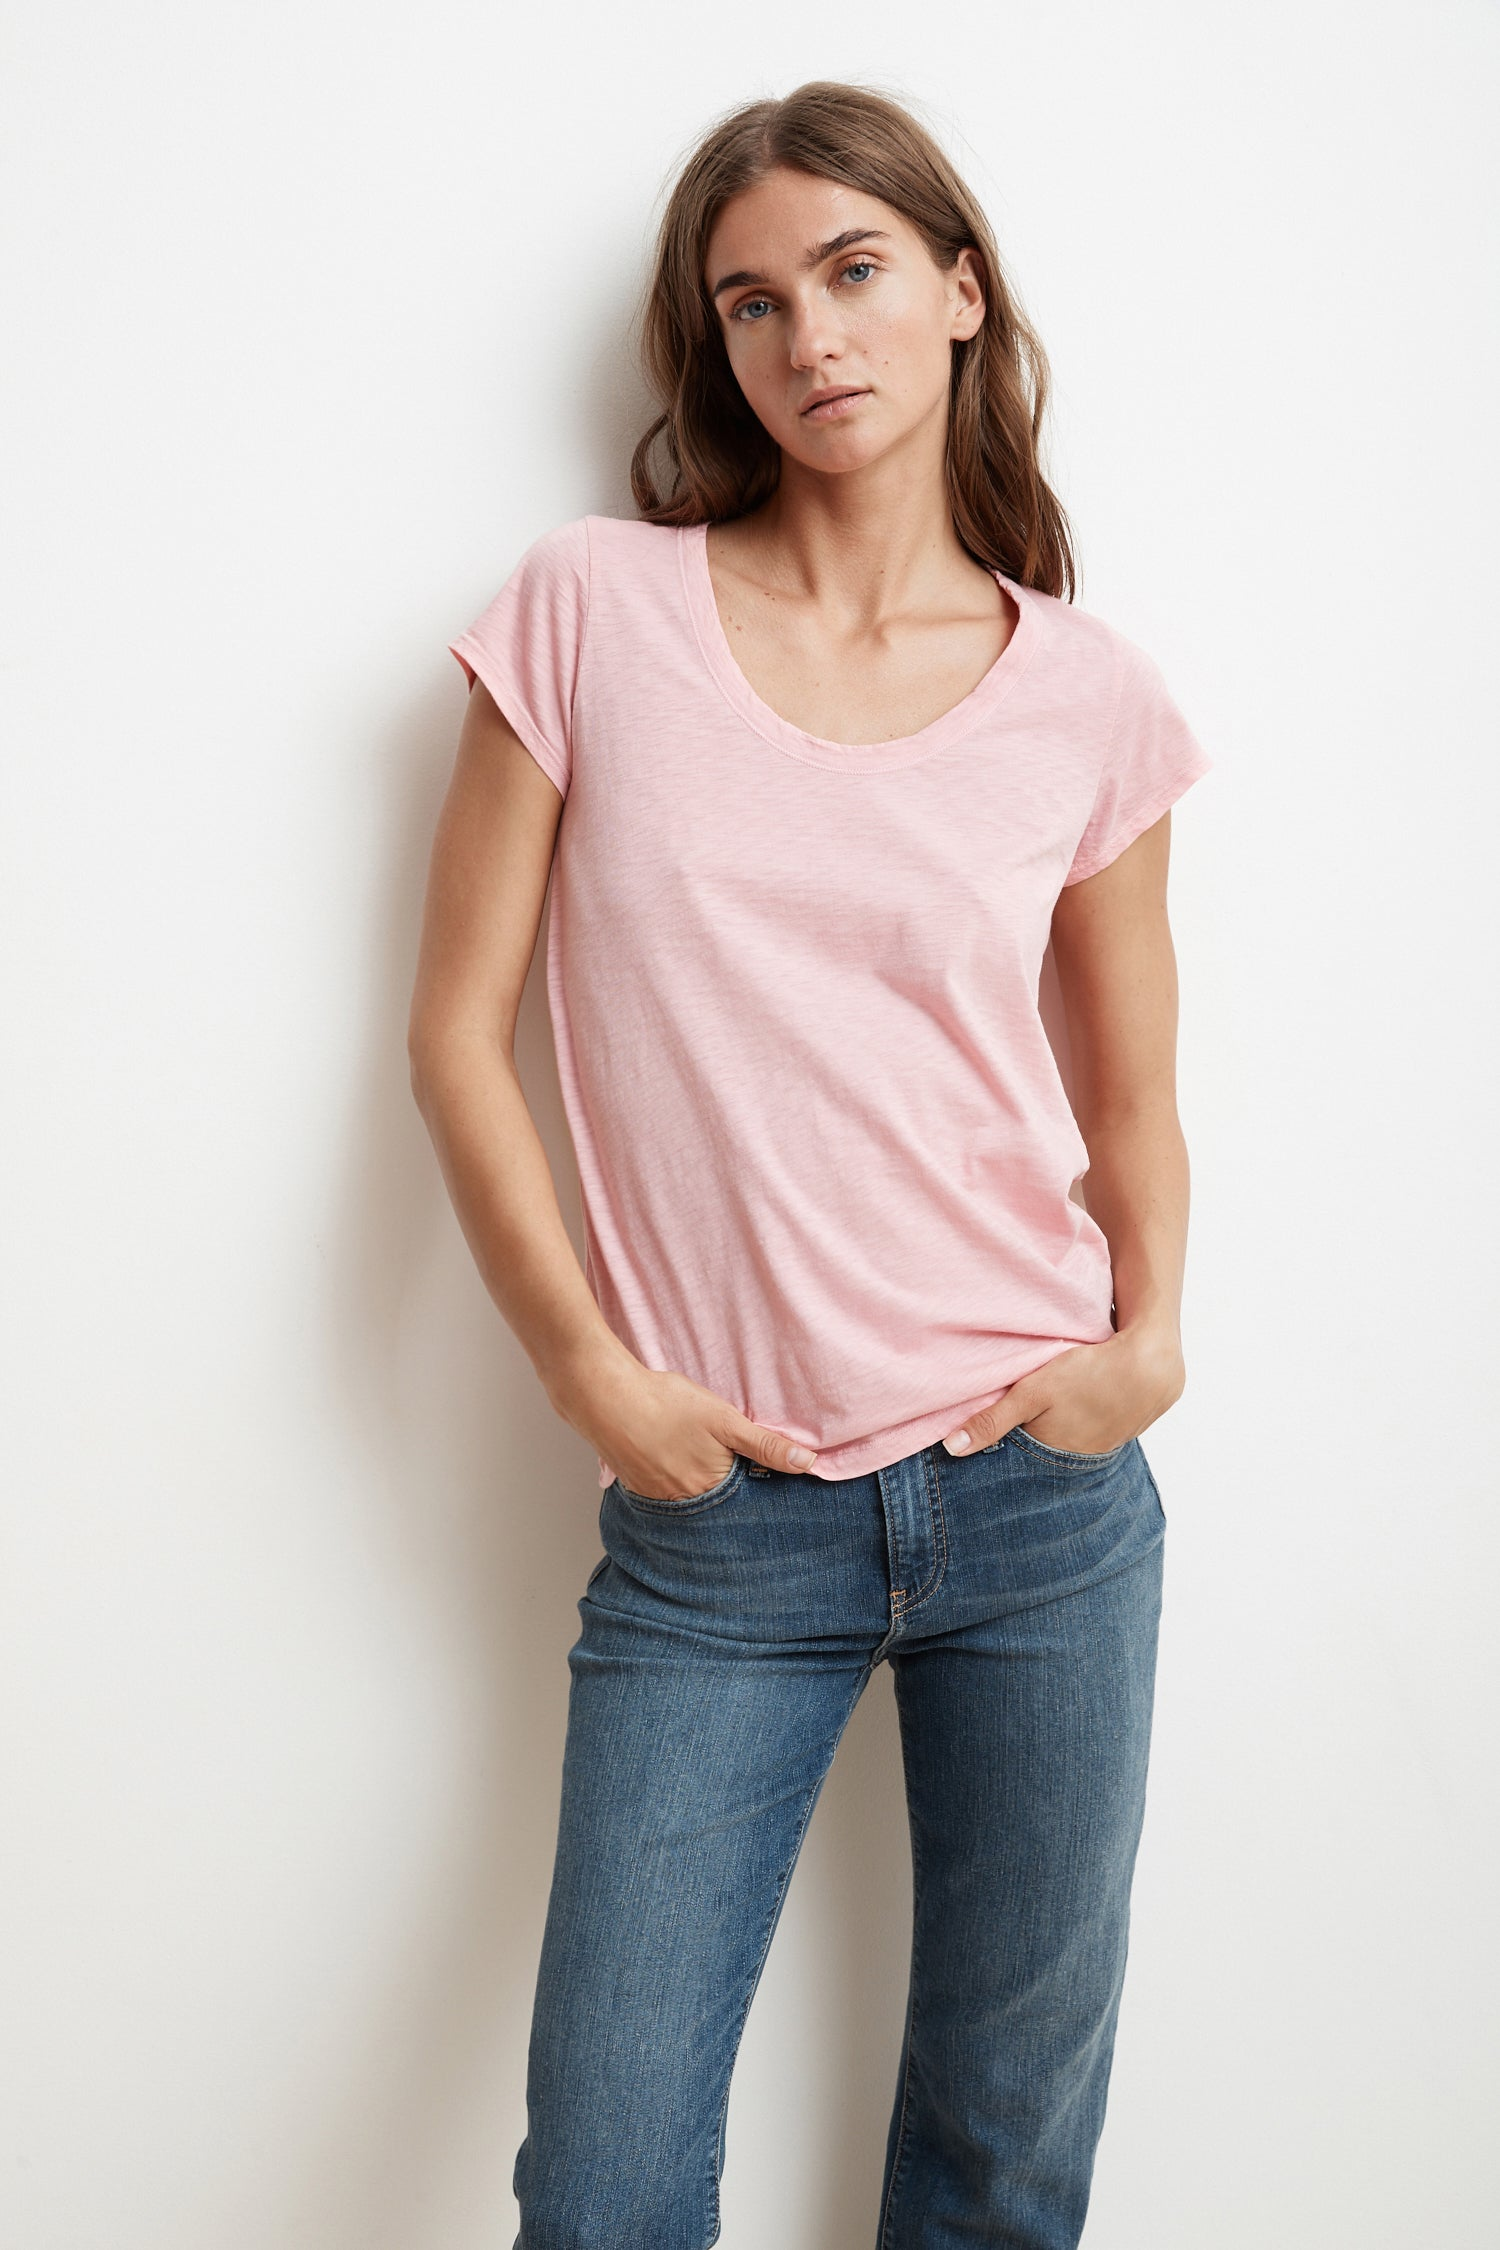 KATIE CITY COTTON SLUB T-SHIRT IN BUBBLE